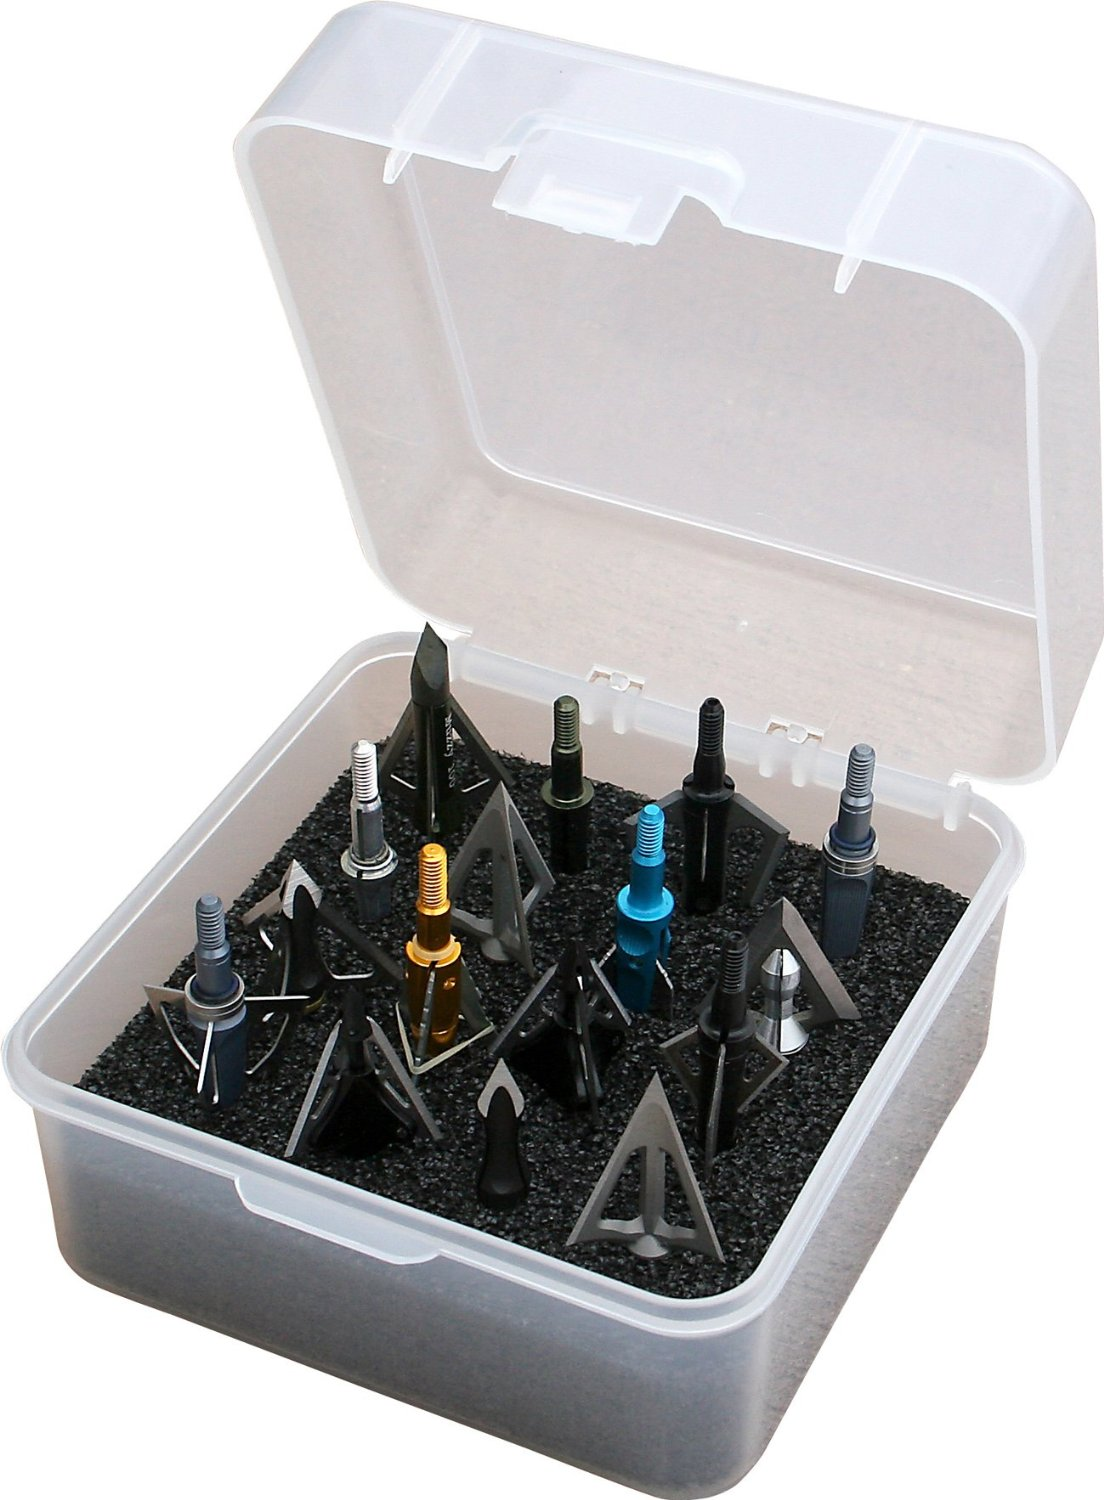 The 5 Best Broadhead Cases